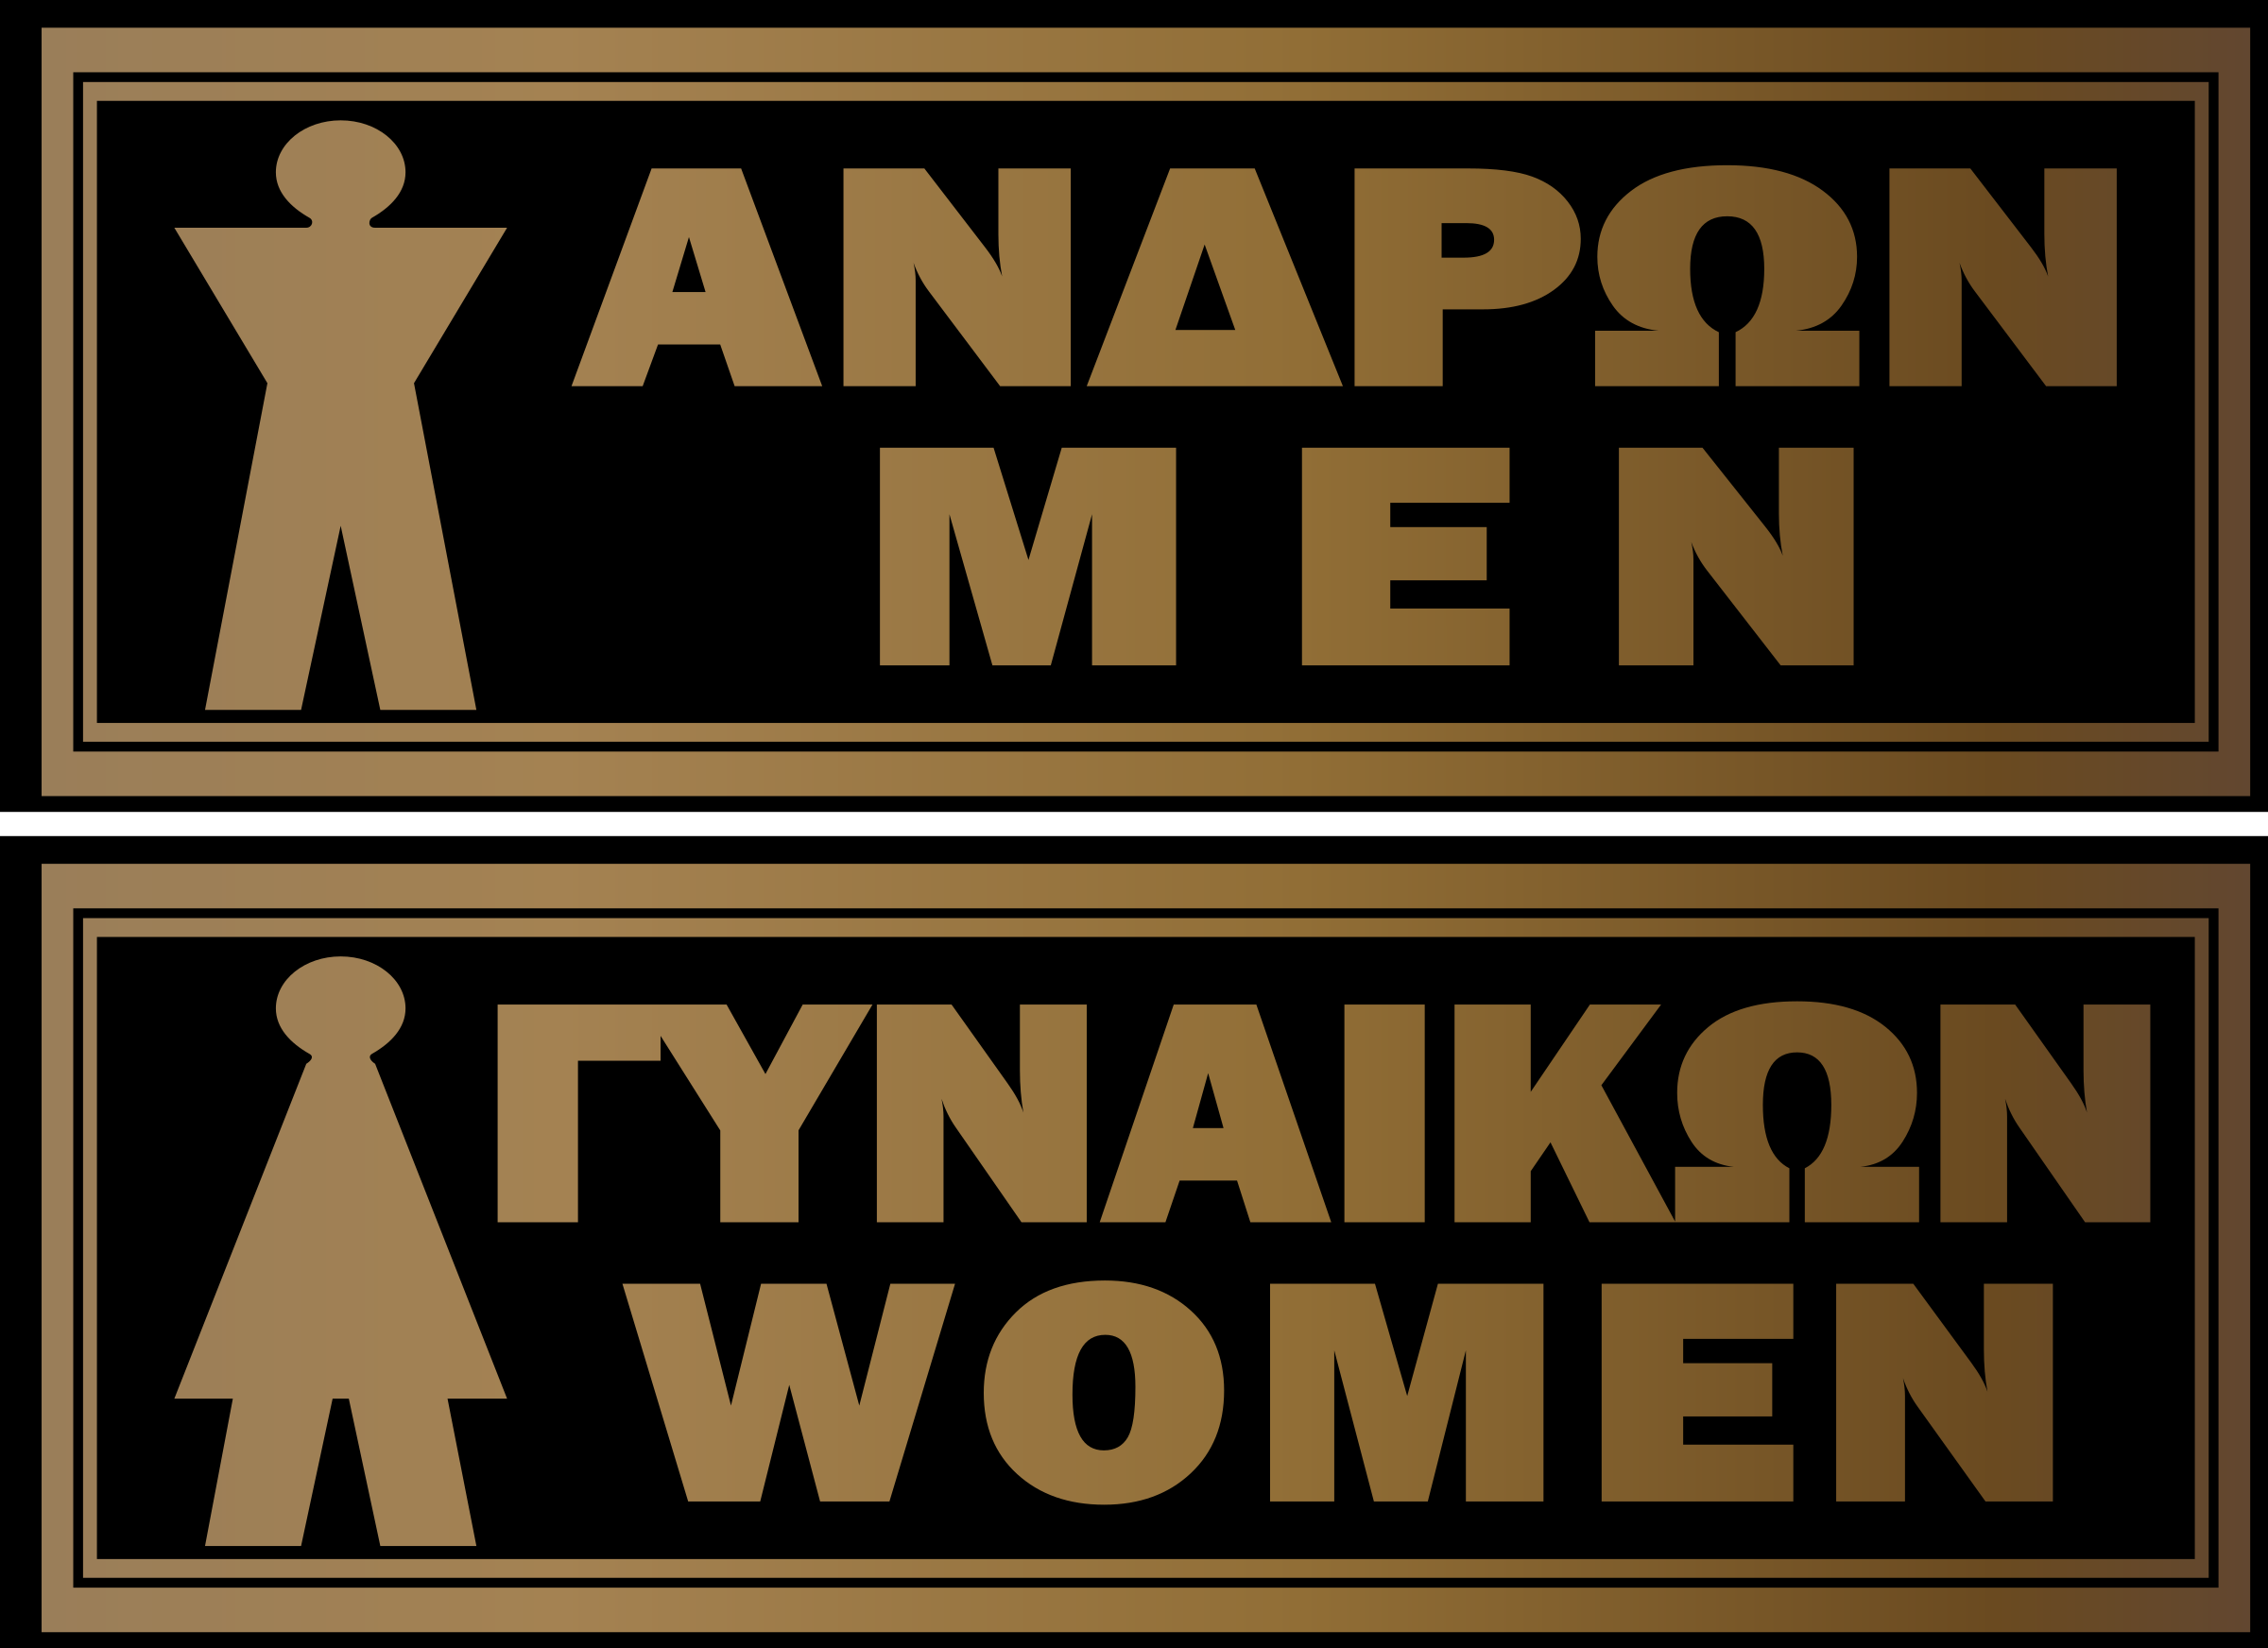 Clipart  Greek Toilet Signs. Scorpion Signs. Quality Signs Of Stroke. Environmental Signs Of Stroke. Causes Symptoms Signs. Segregation Signs. Hyperemic Signs. Facial Skin Signs. Isosceles Signs Of Stroke